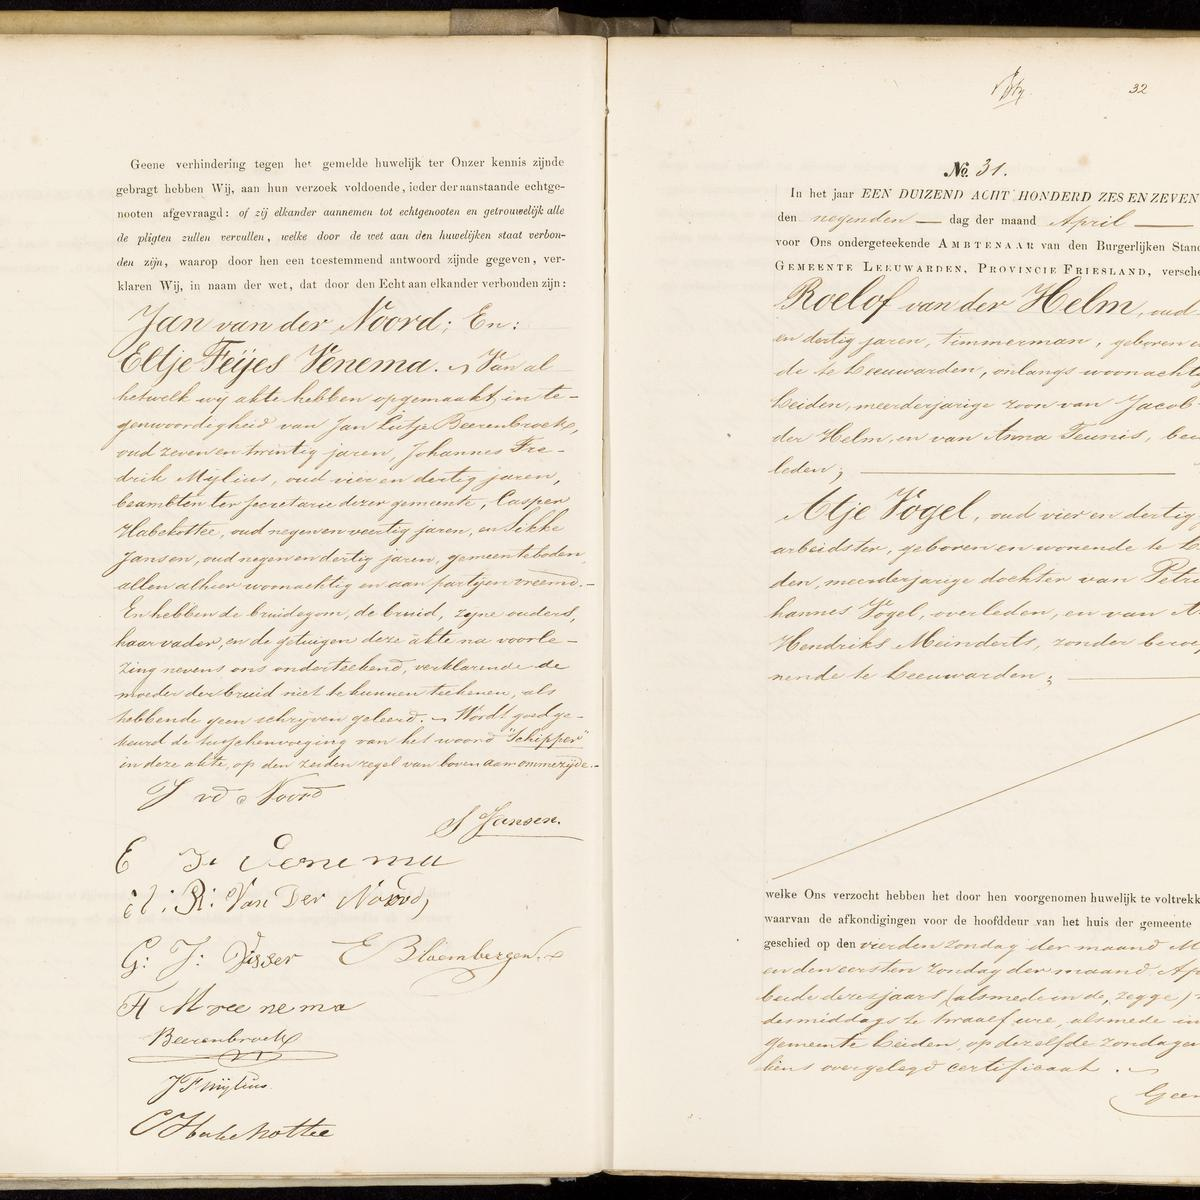 Civil registry of marriages, Leeuwarden, 1876, records 30-31